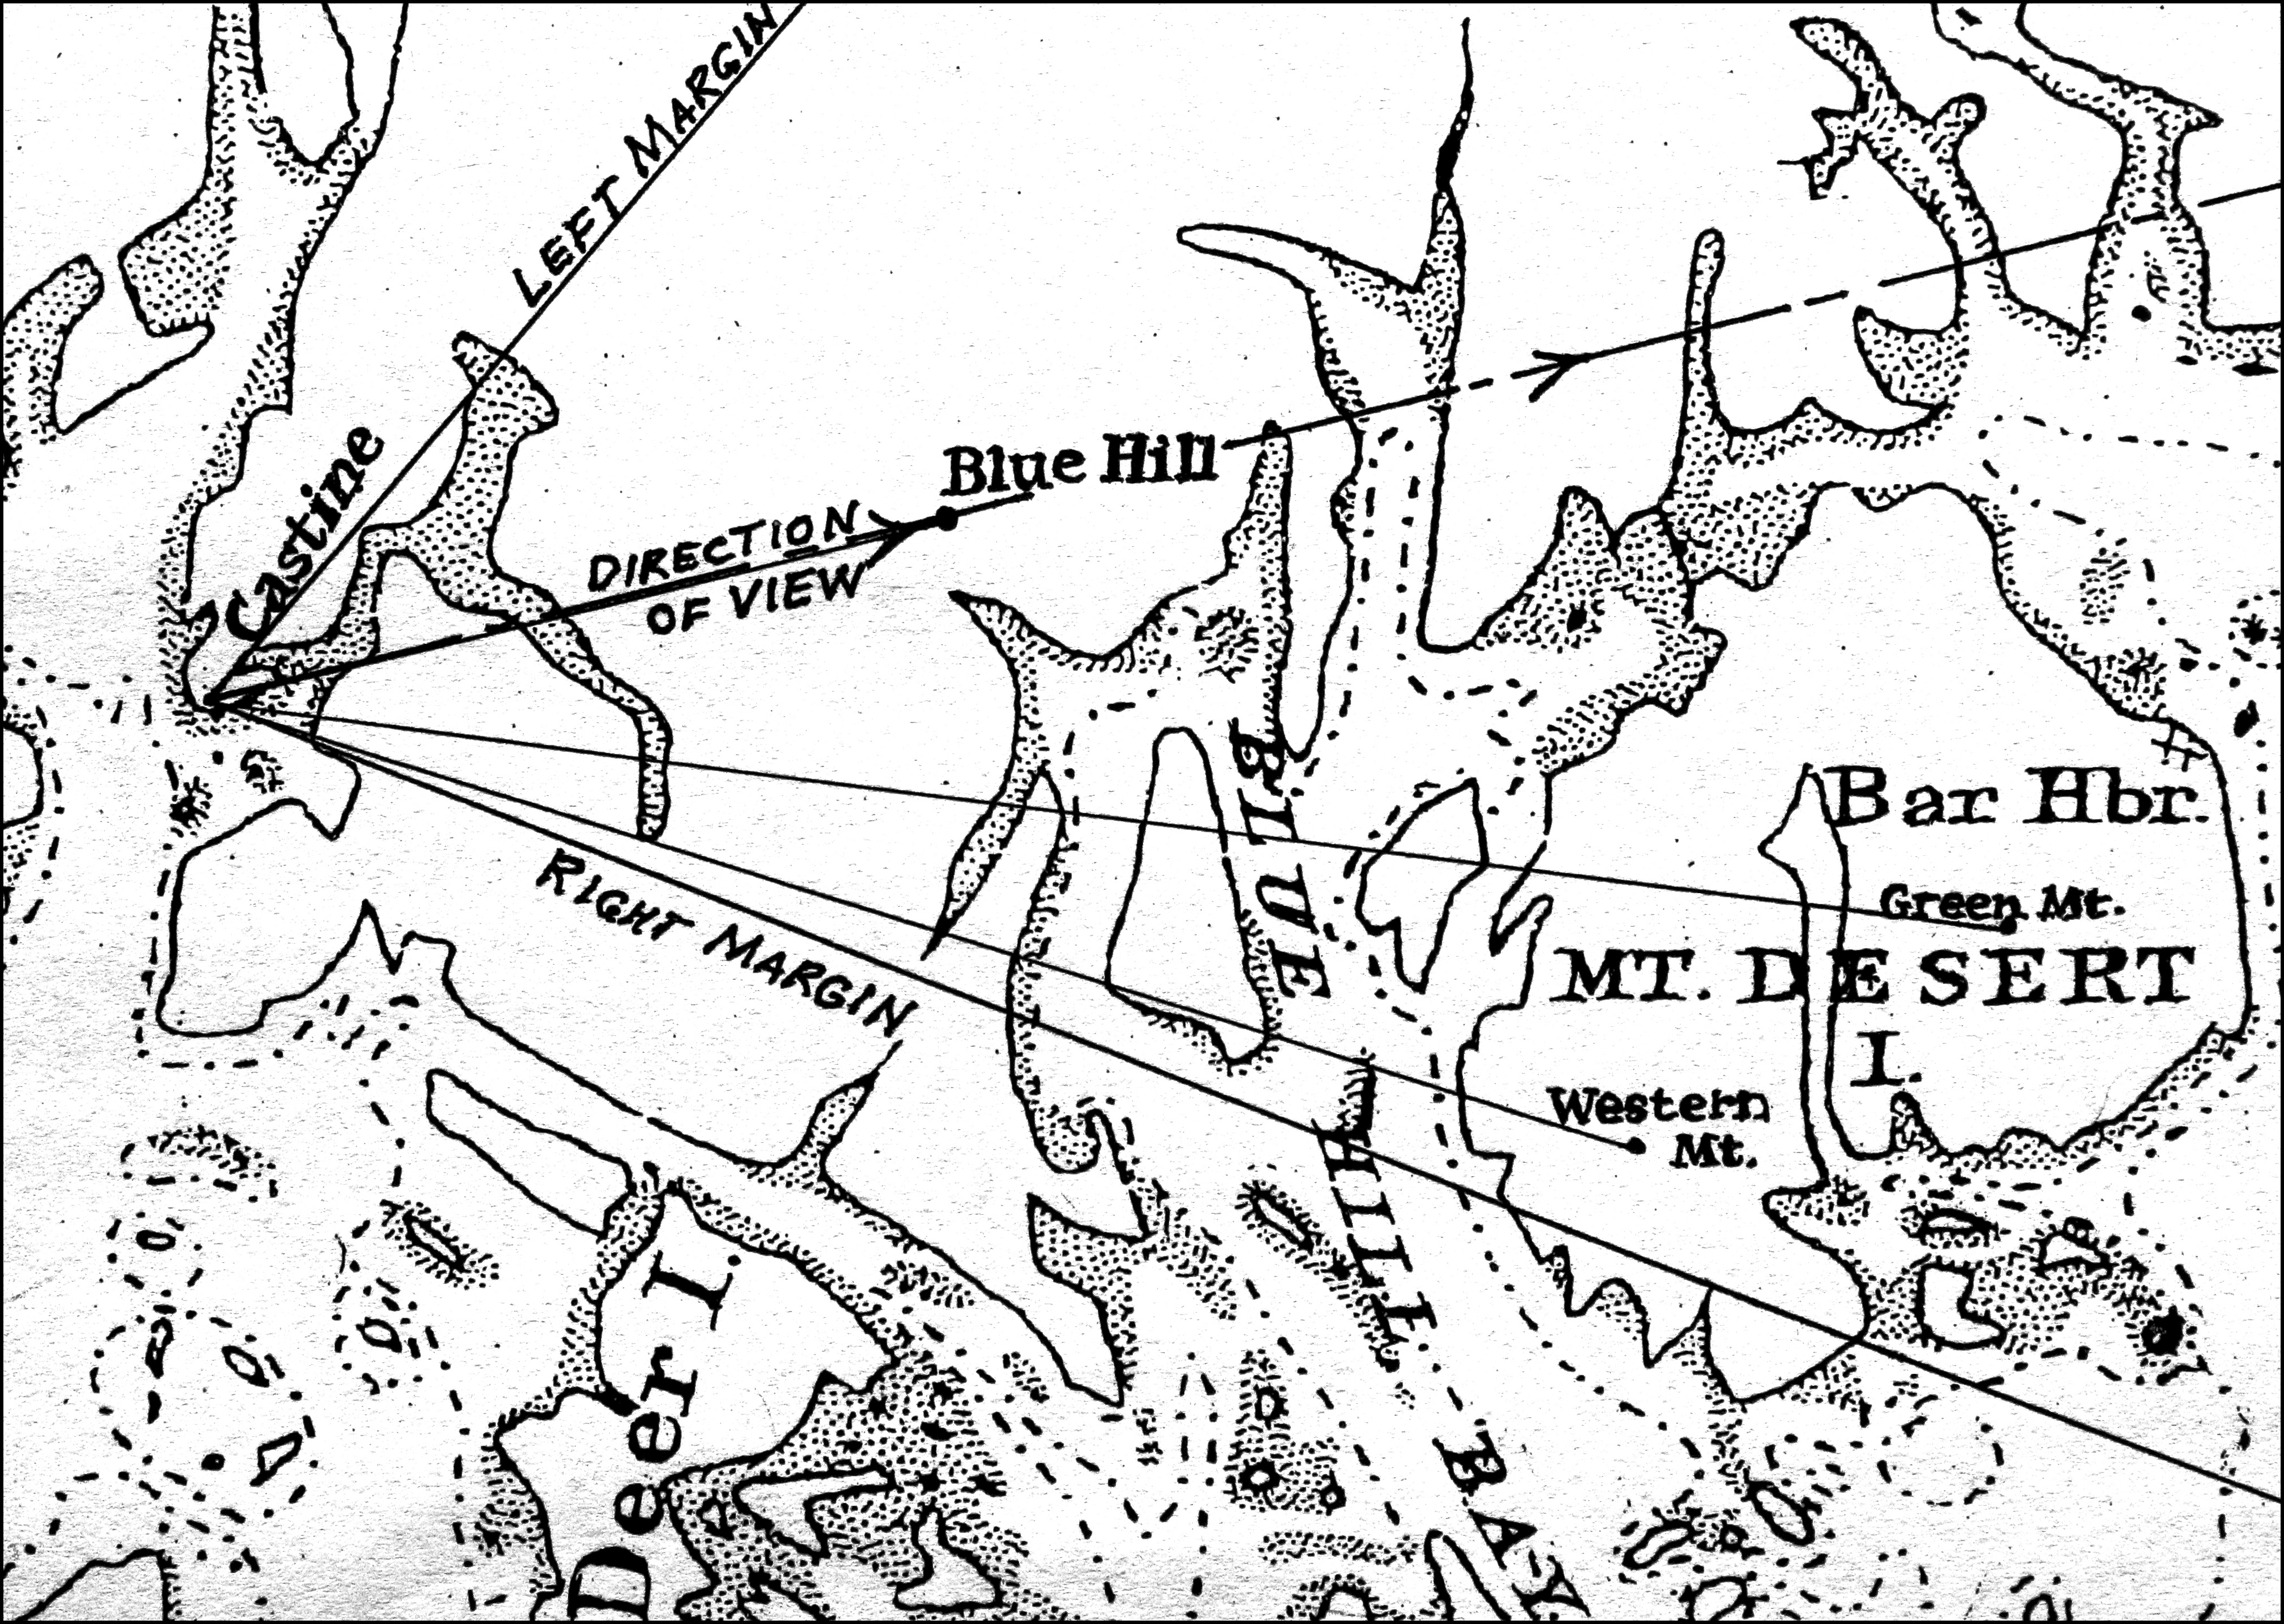 Fitz henry lane castine from fort preble 1851 inv 169 viewpoint chart showing lanes location when making this drawing nvjuhfo Gallery